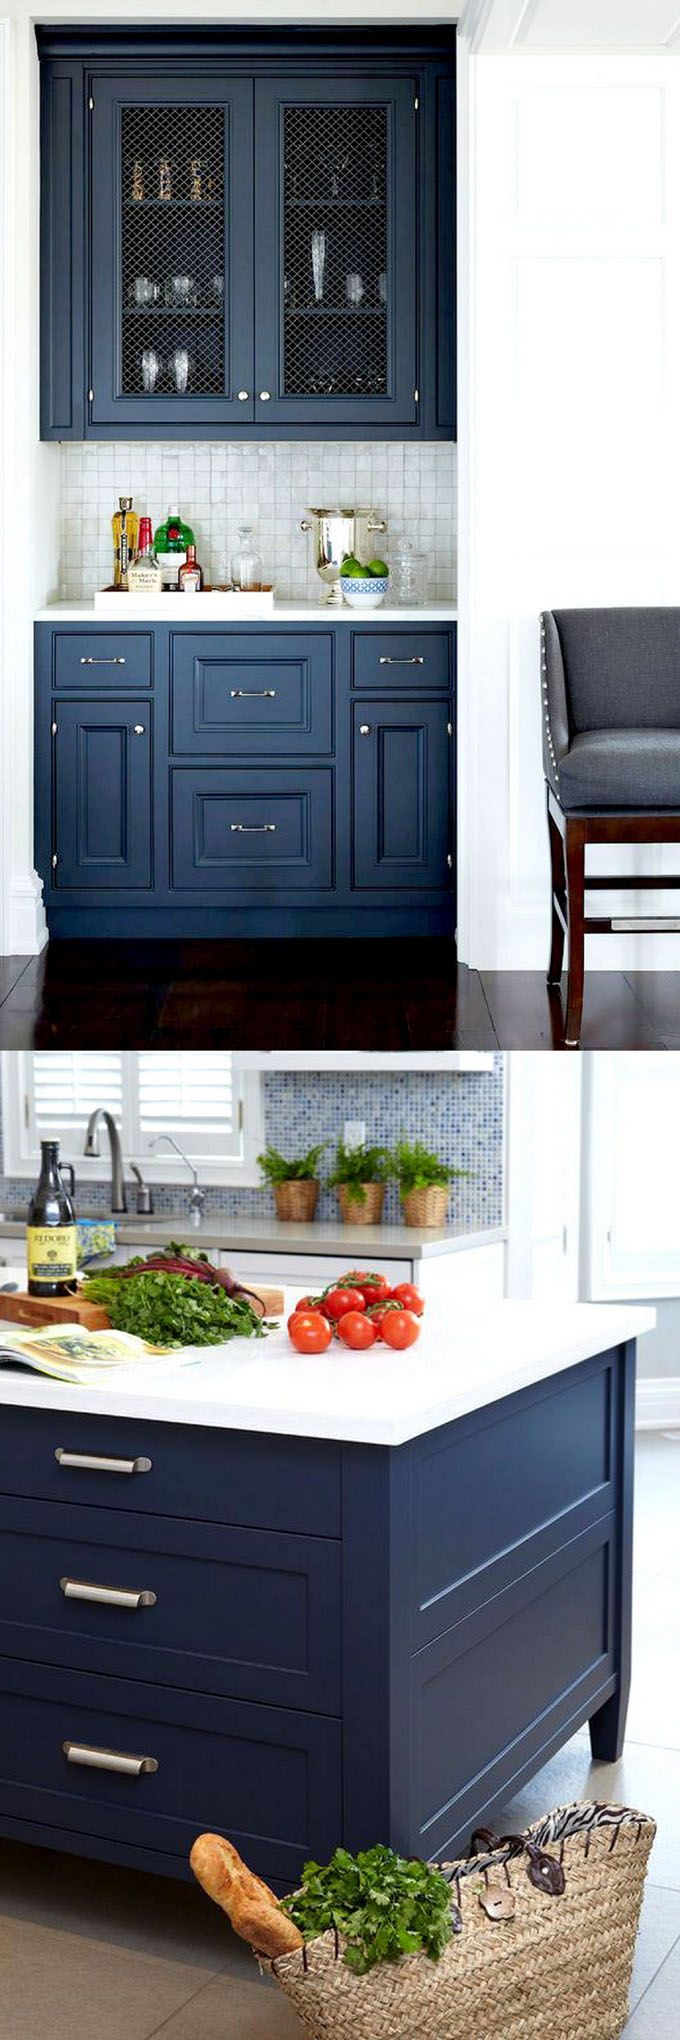 Paint Colors For Kitchen best 25+ kitchen paint ideas on pinterest | kitchen colors